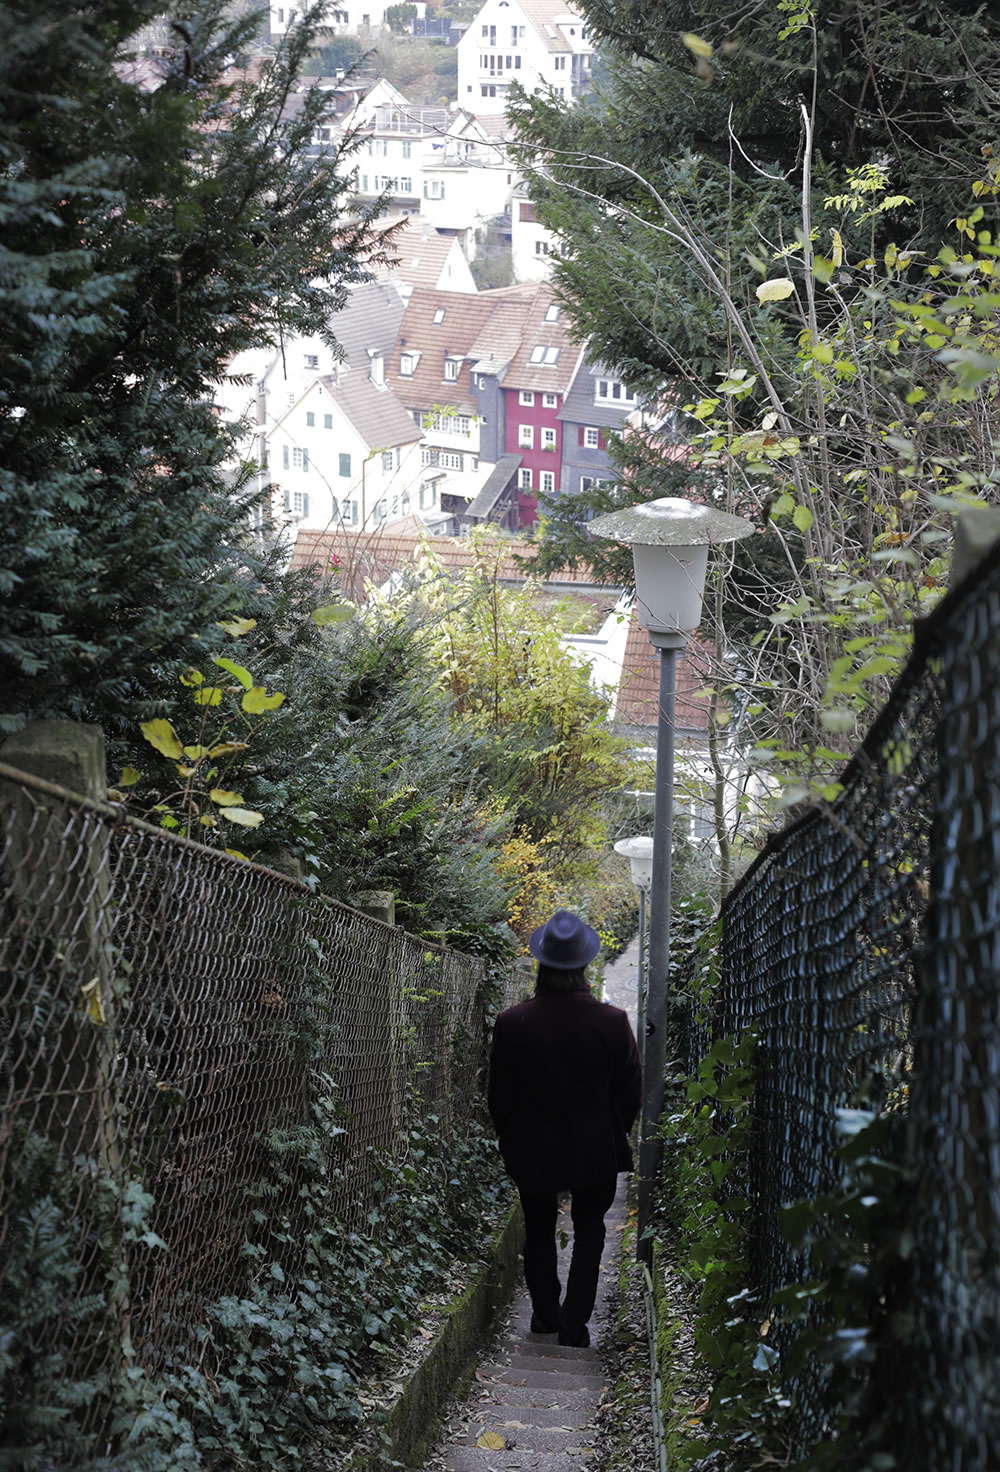 A pre-Thanksgiving dinner walk through the steep hills in Esslingen, Germany.